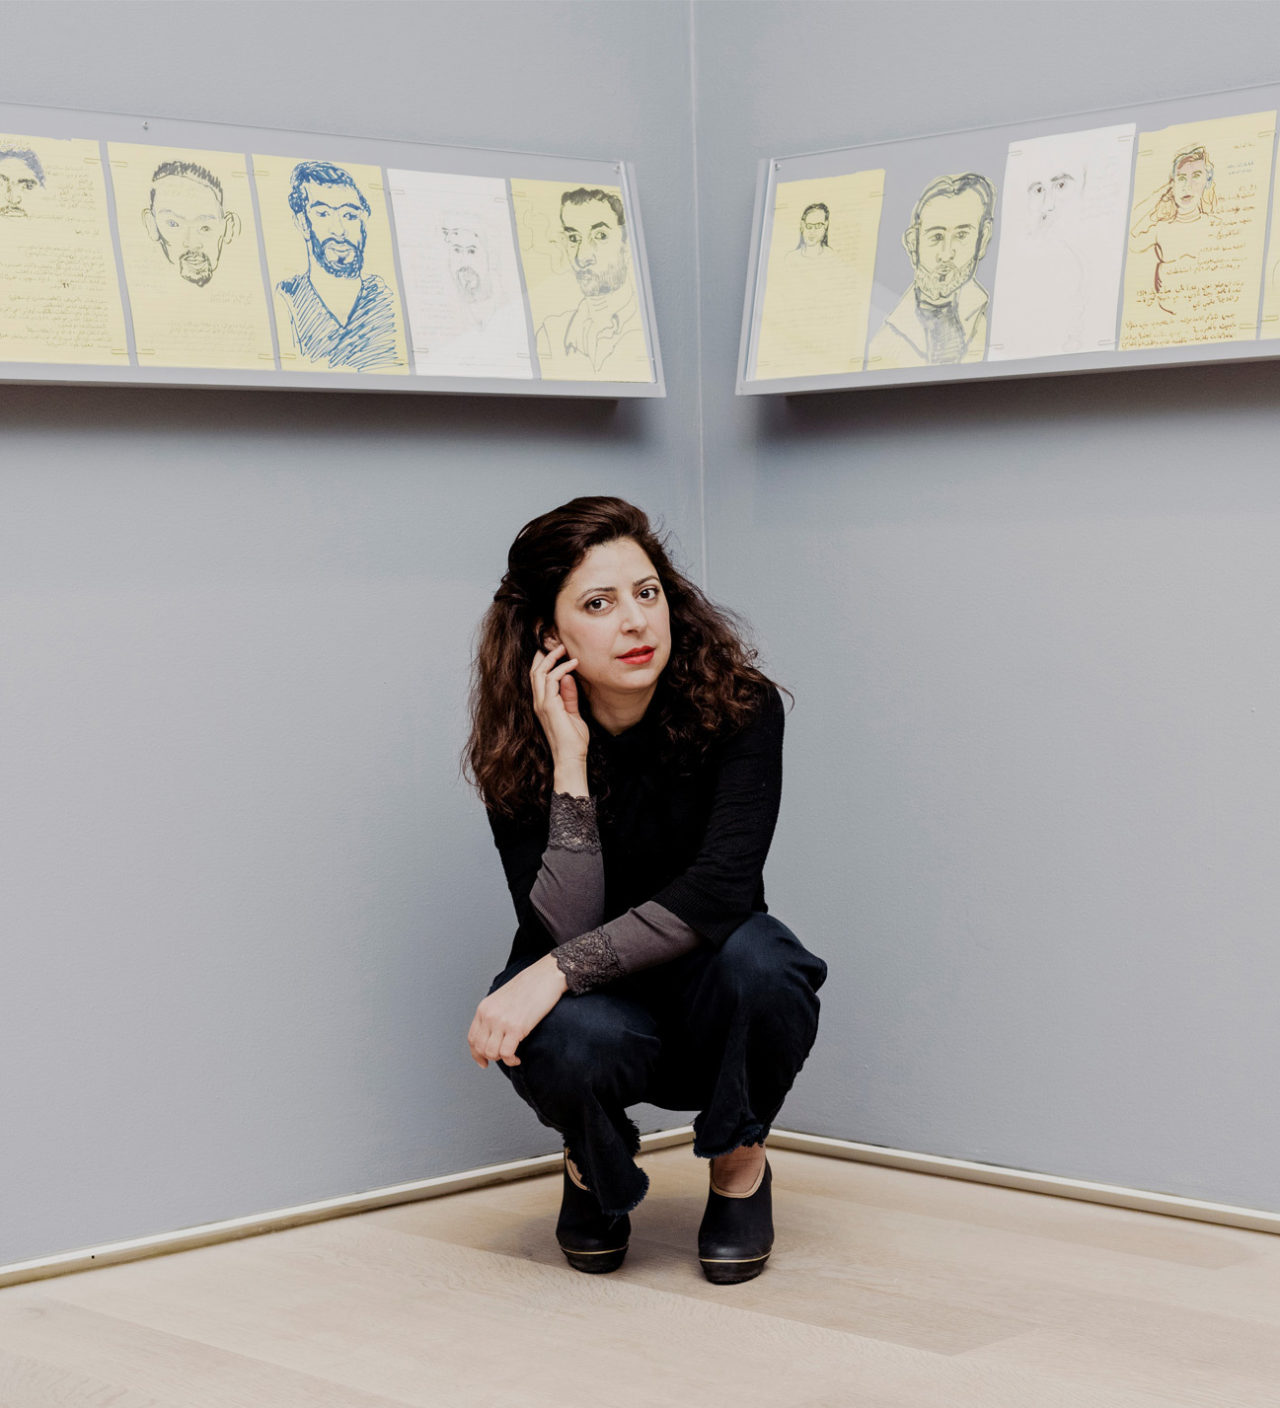 Mounira Al Solh, Visiting artist at the Master Artistic Research